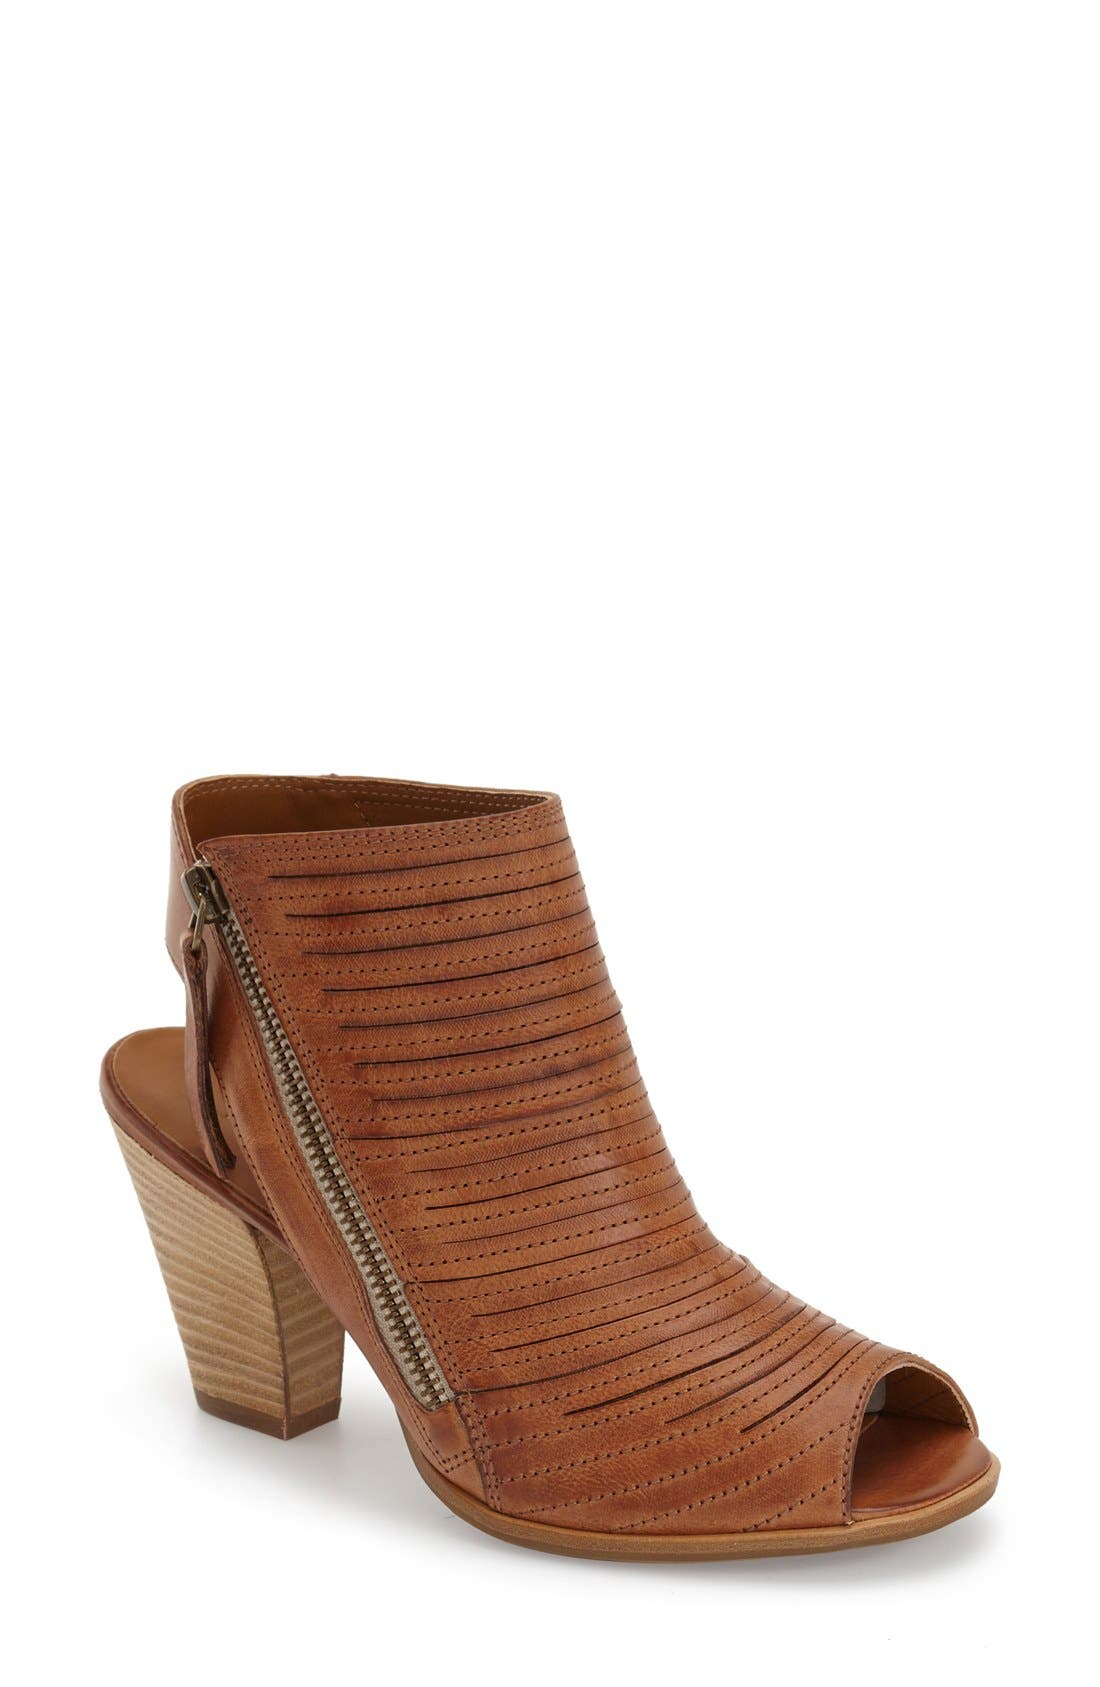 ,                             'Cayanne' Leather Peep Toe Sandal,                             Main thumbnail 39, color,                             200